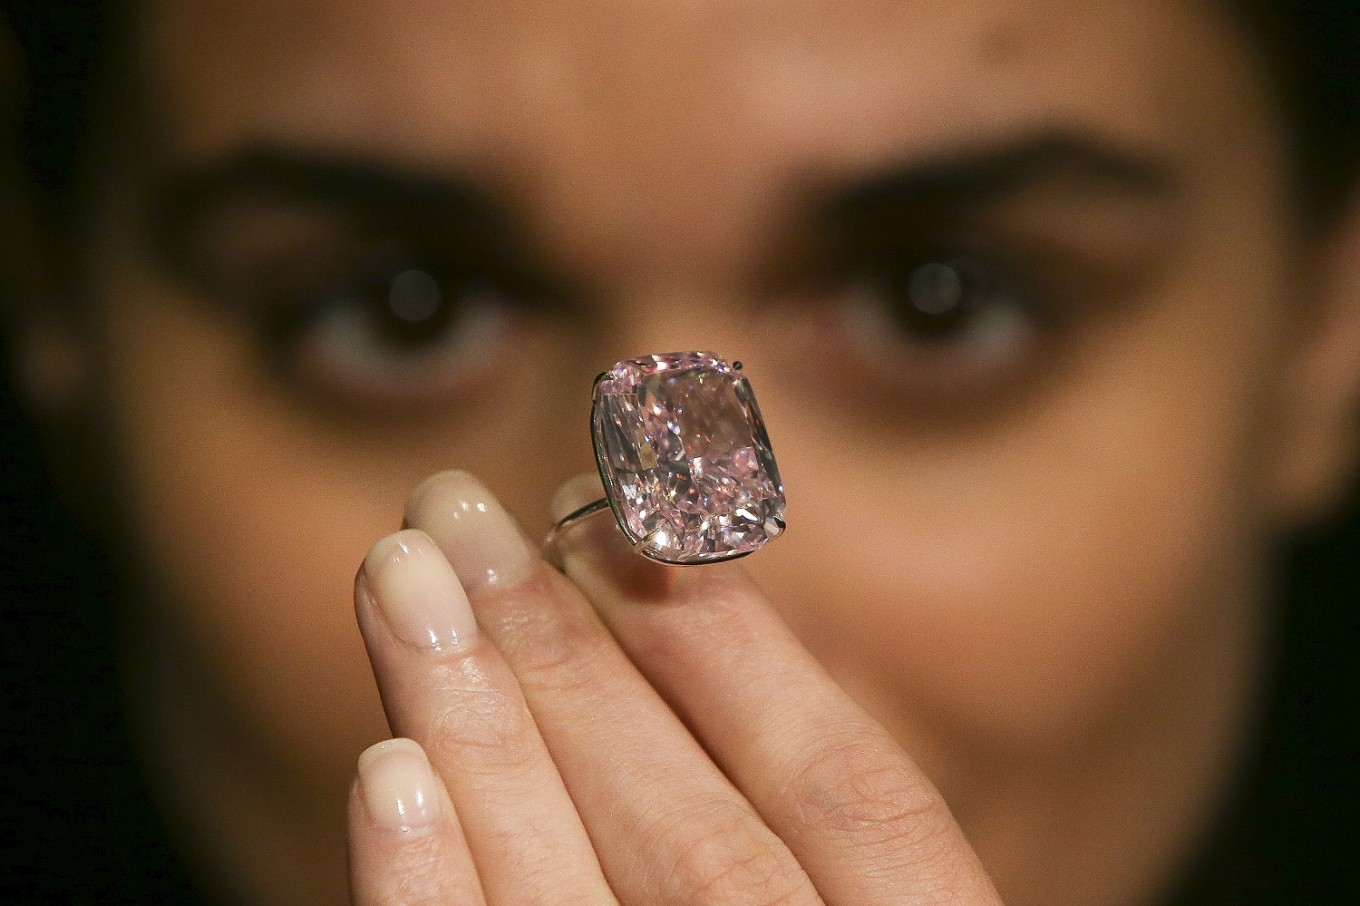 'Raj Pink' diamond fails to sell at auction